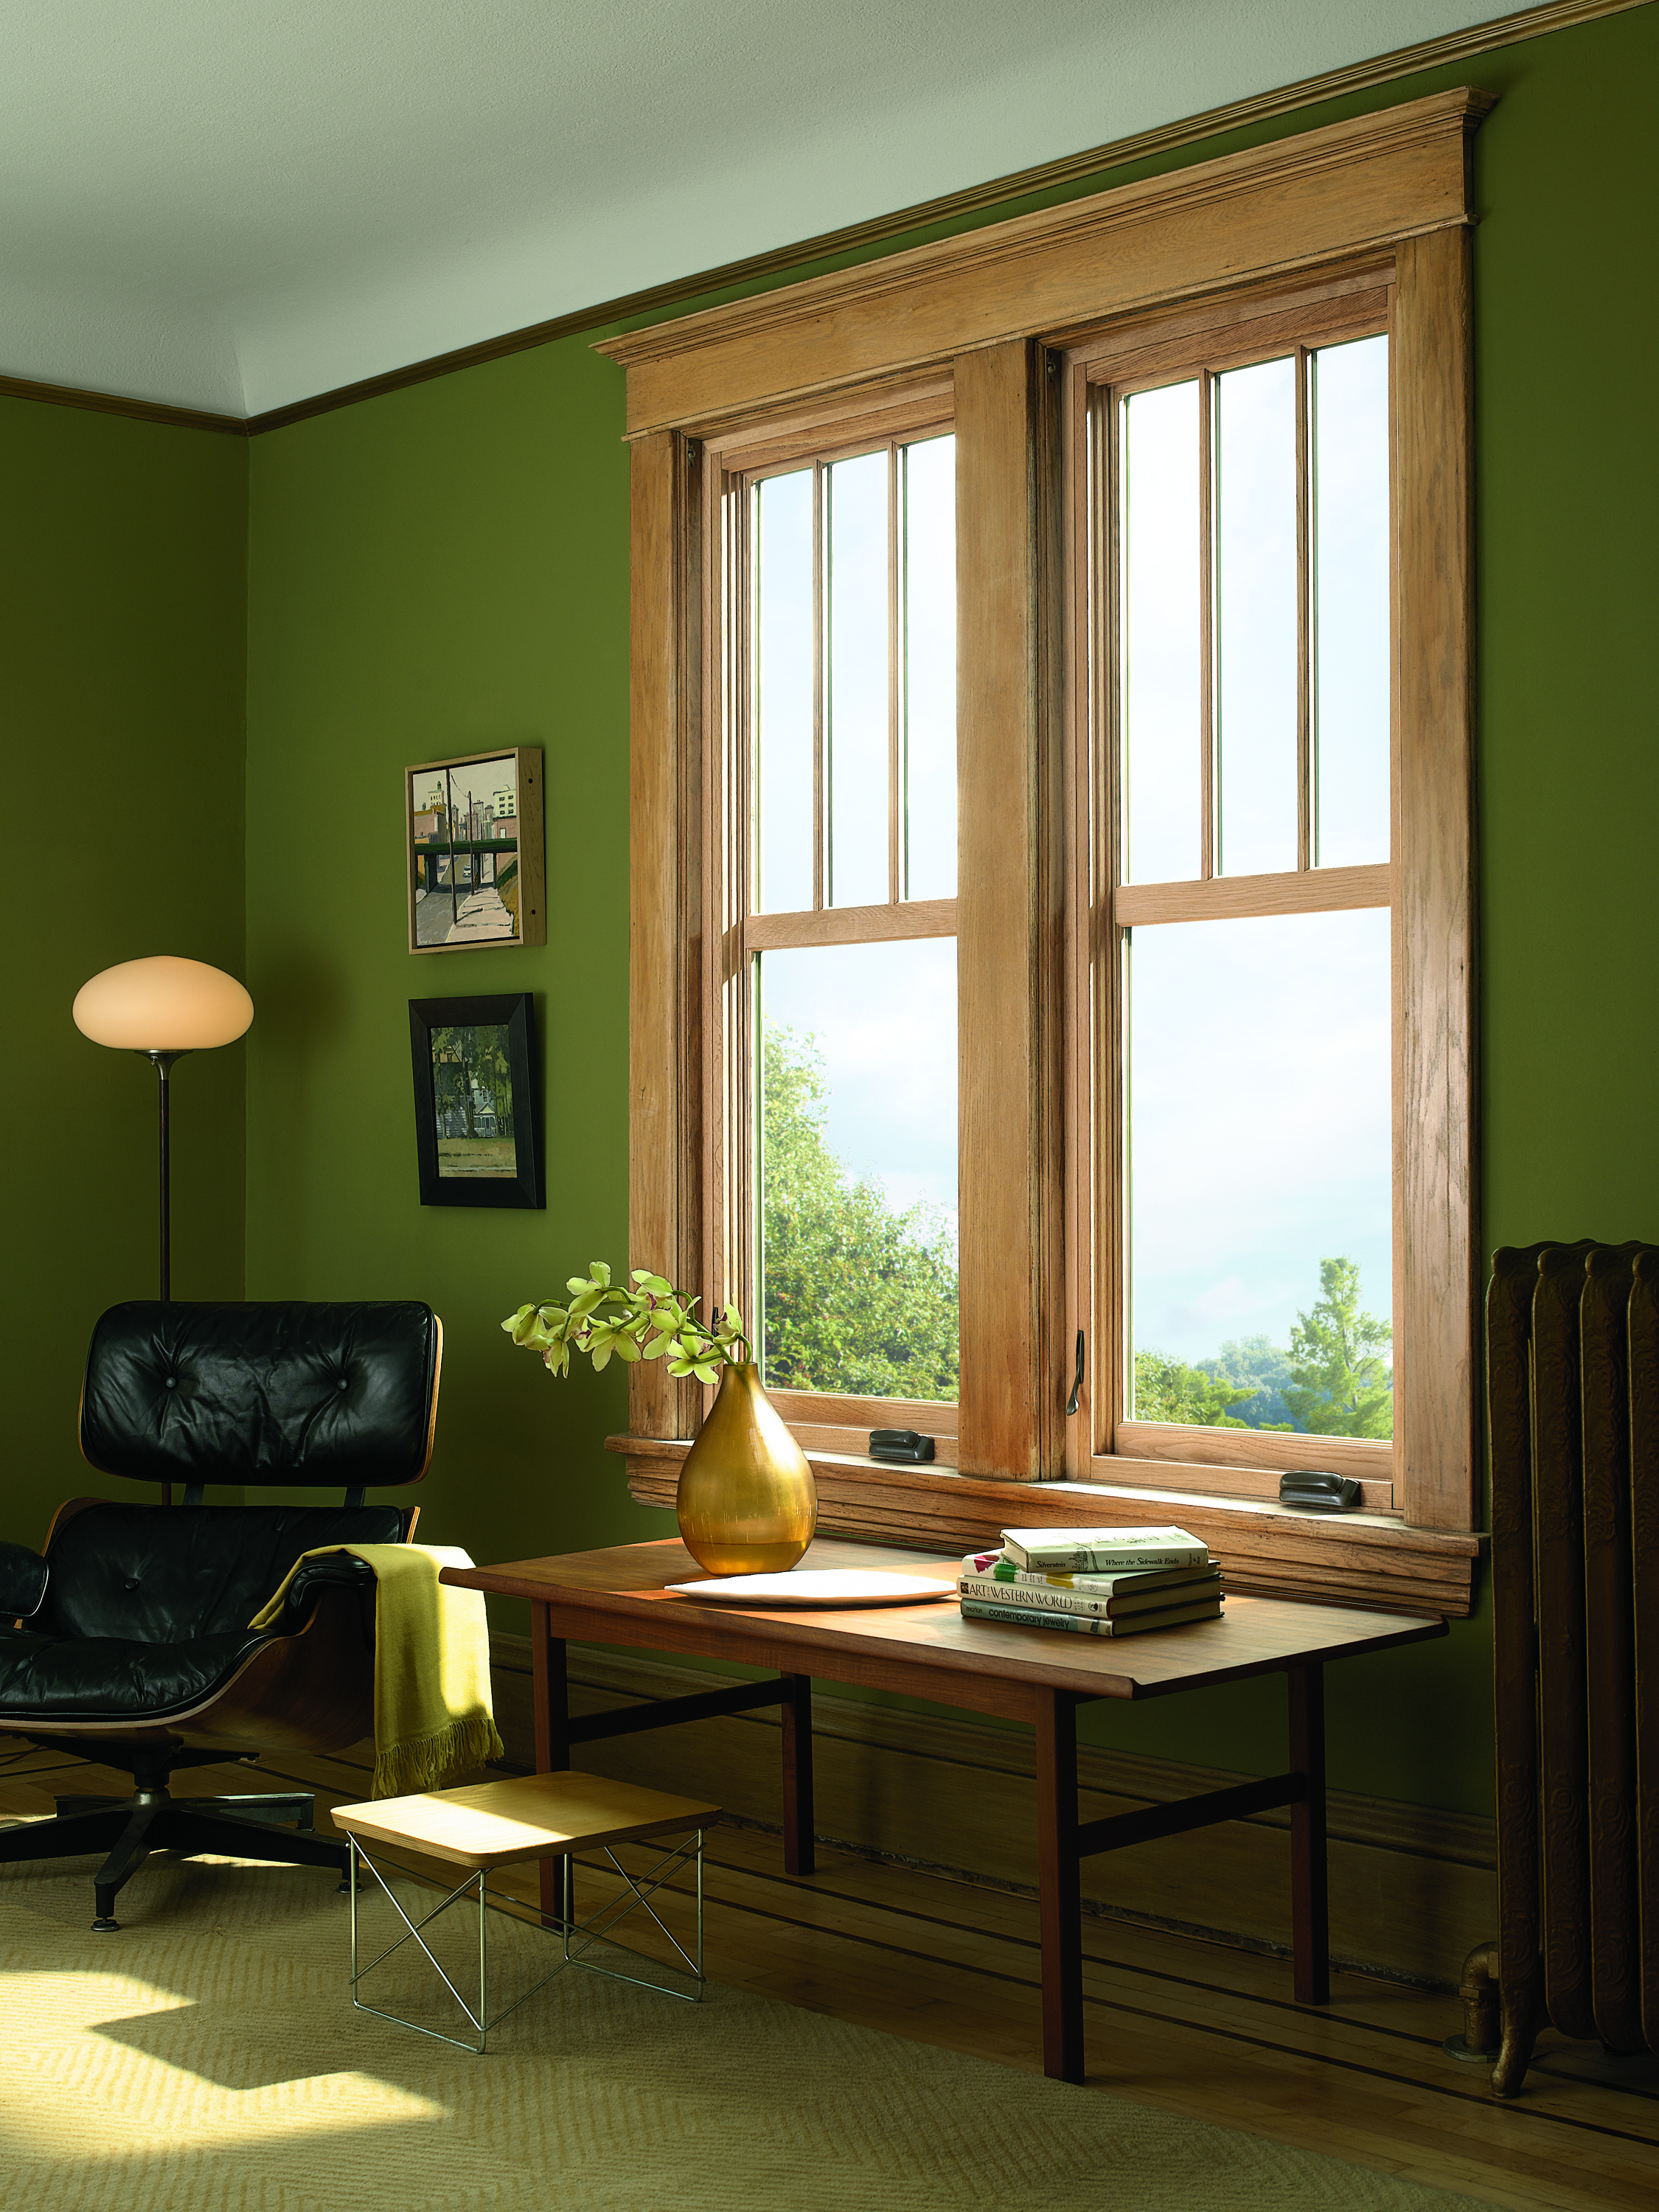 Product Trends Windows Let The Sunshine In Pro Remodeler